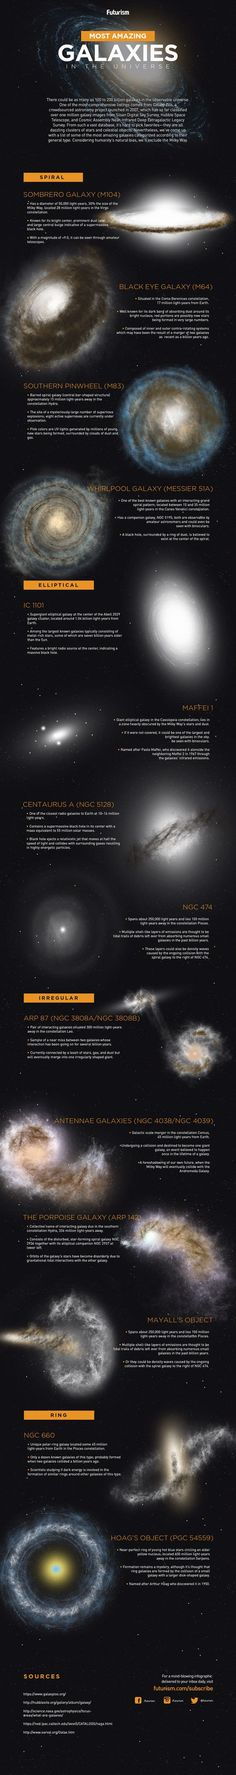 Most Amazing Galaxies in the Universe